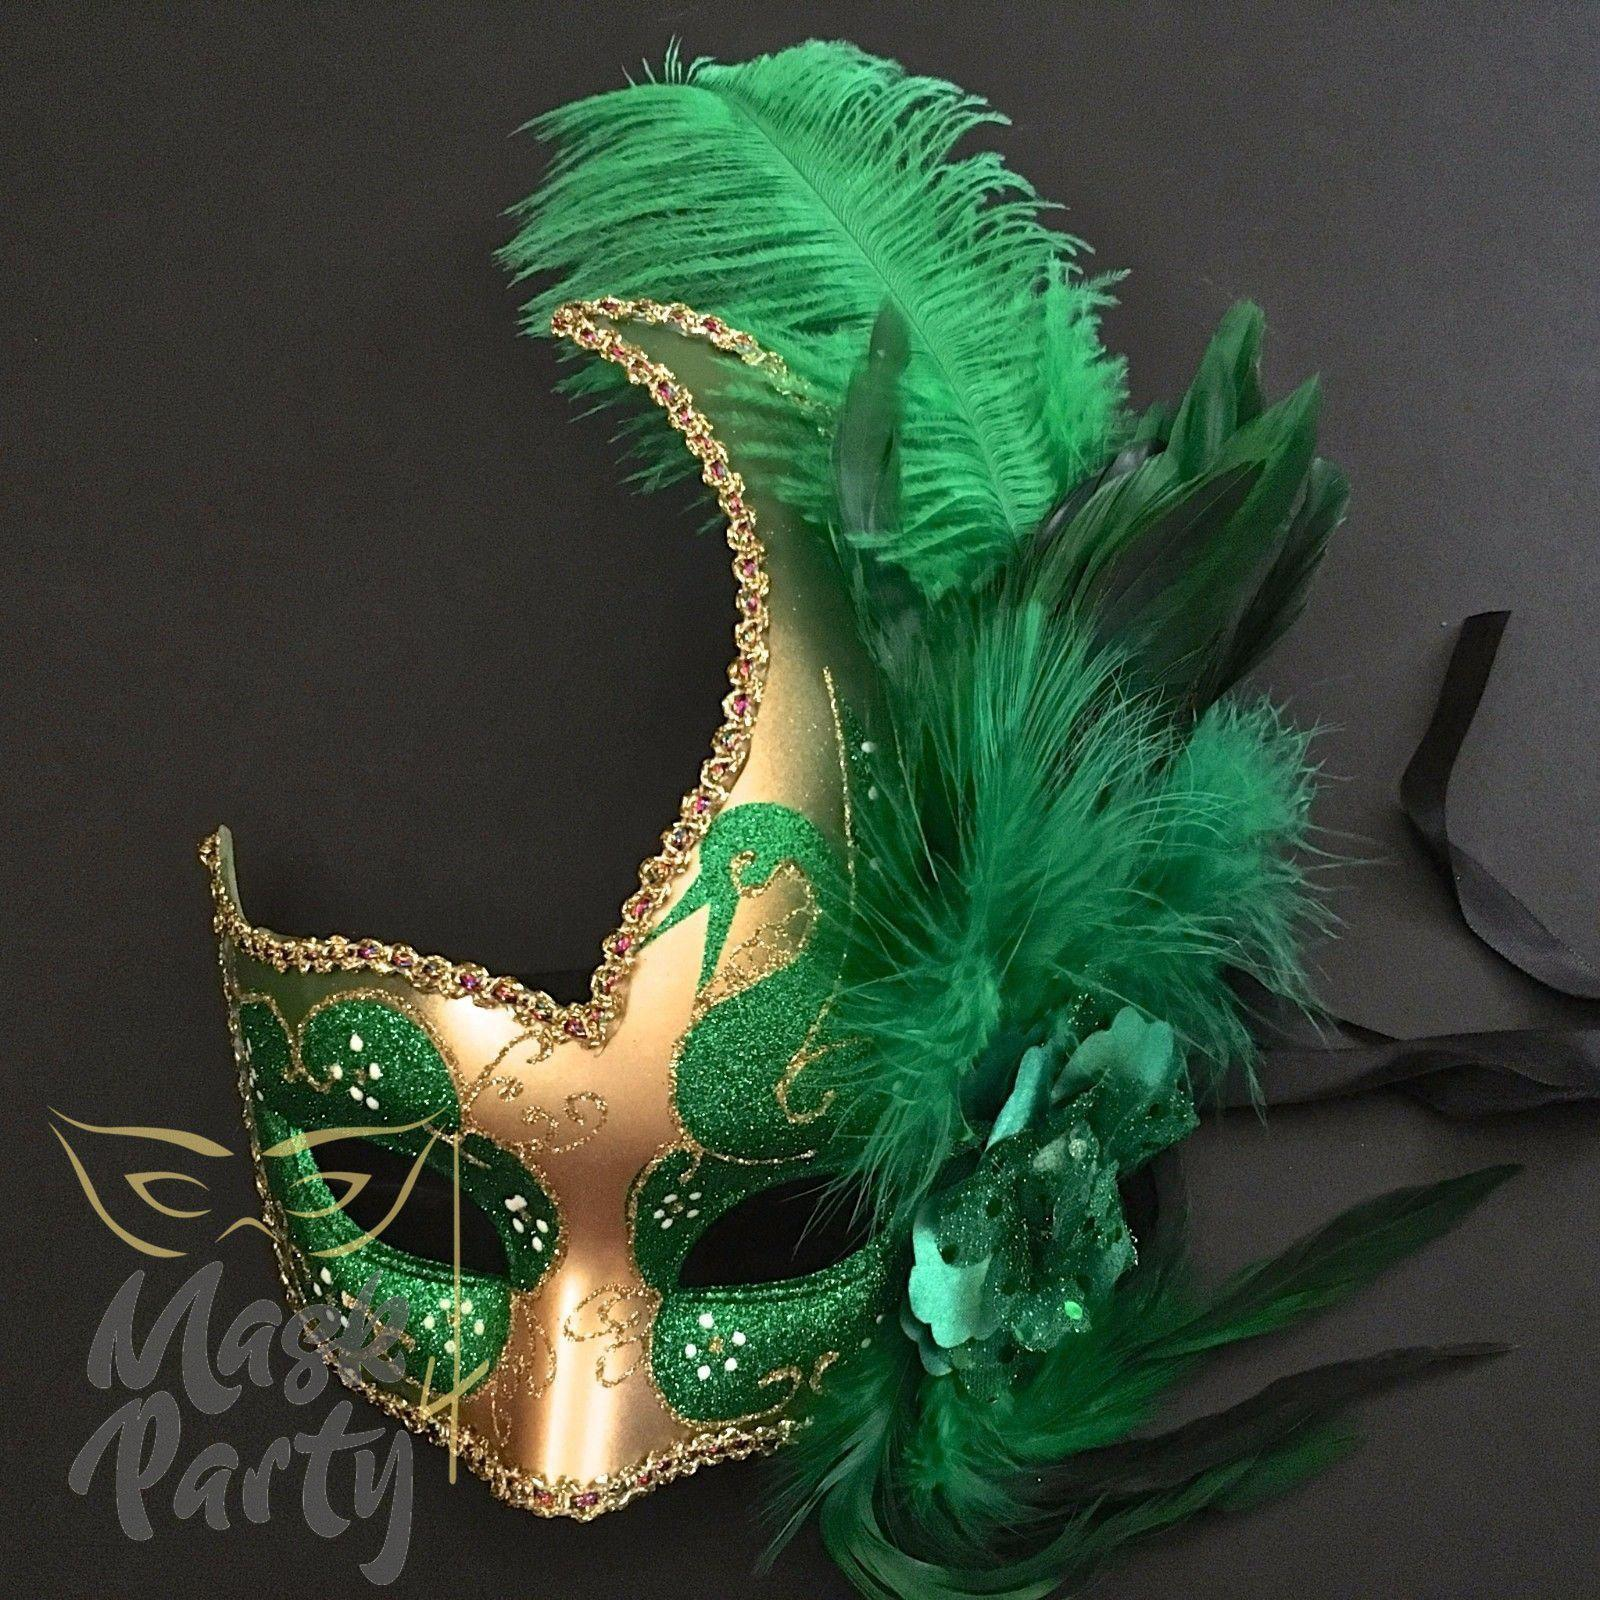 Masquerade Mask - Venetian Feather - Gold/Green - Mask4Party